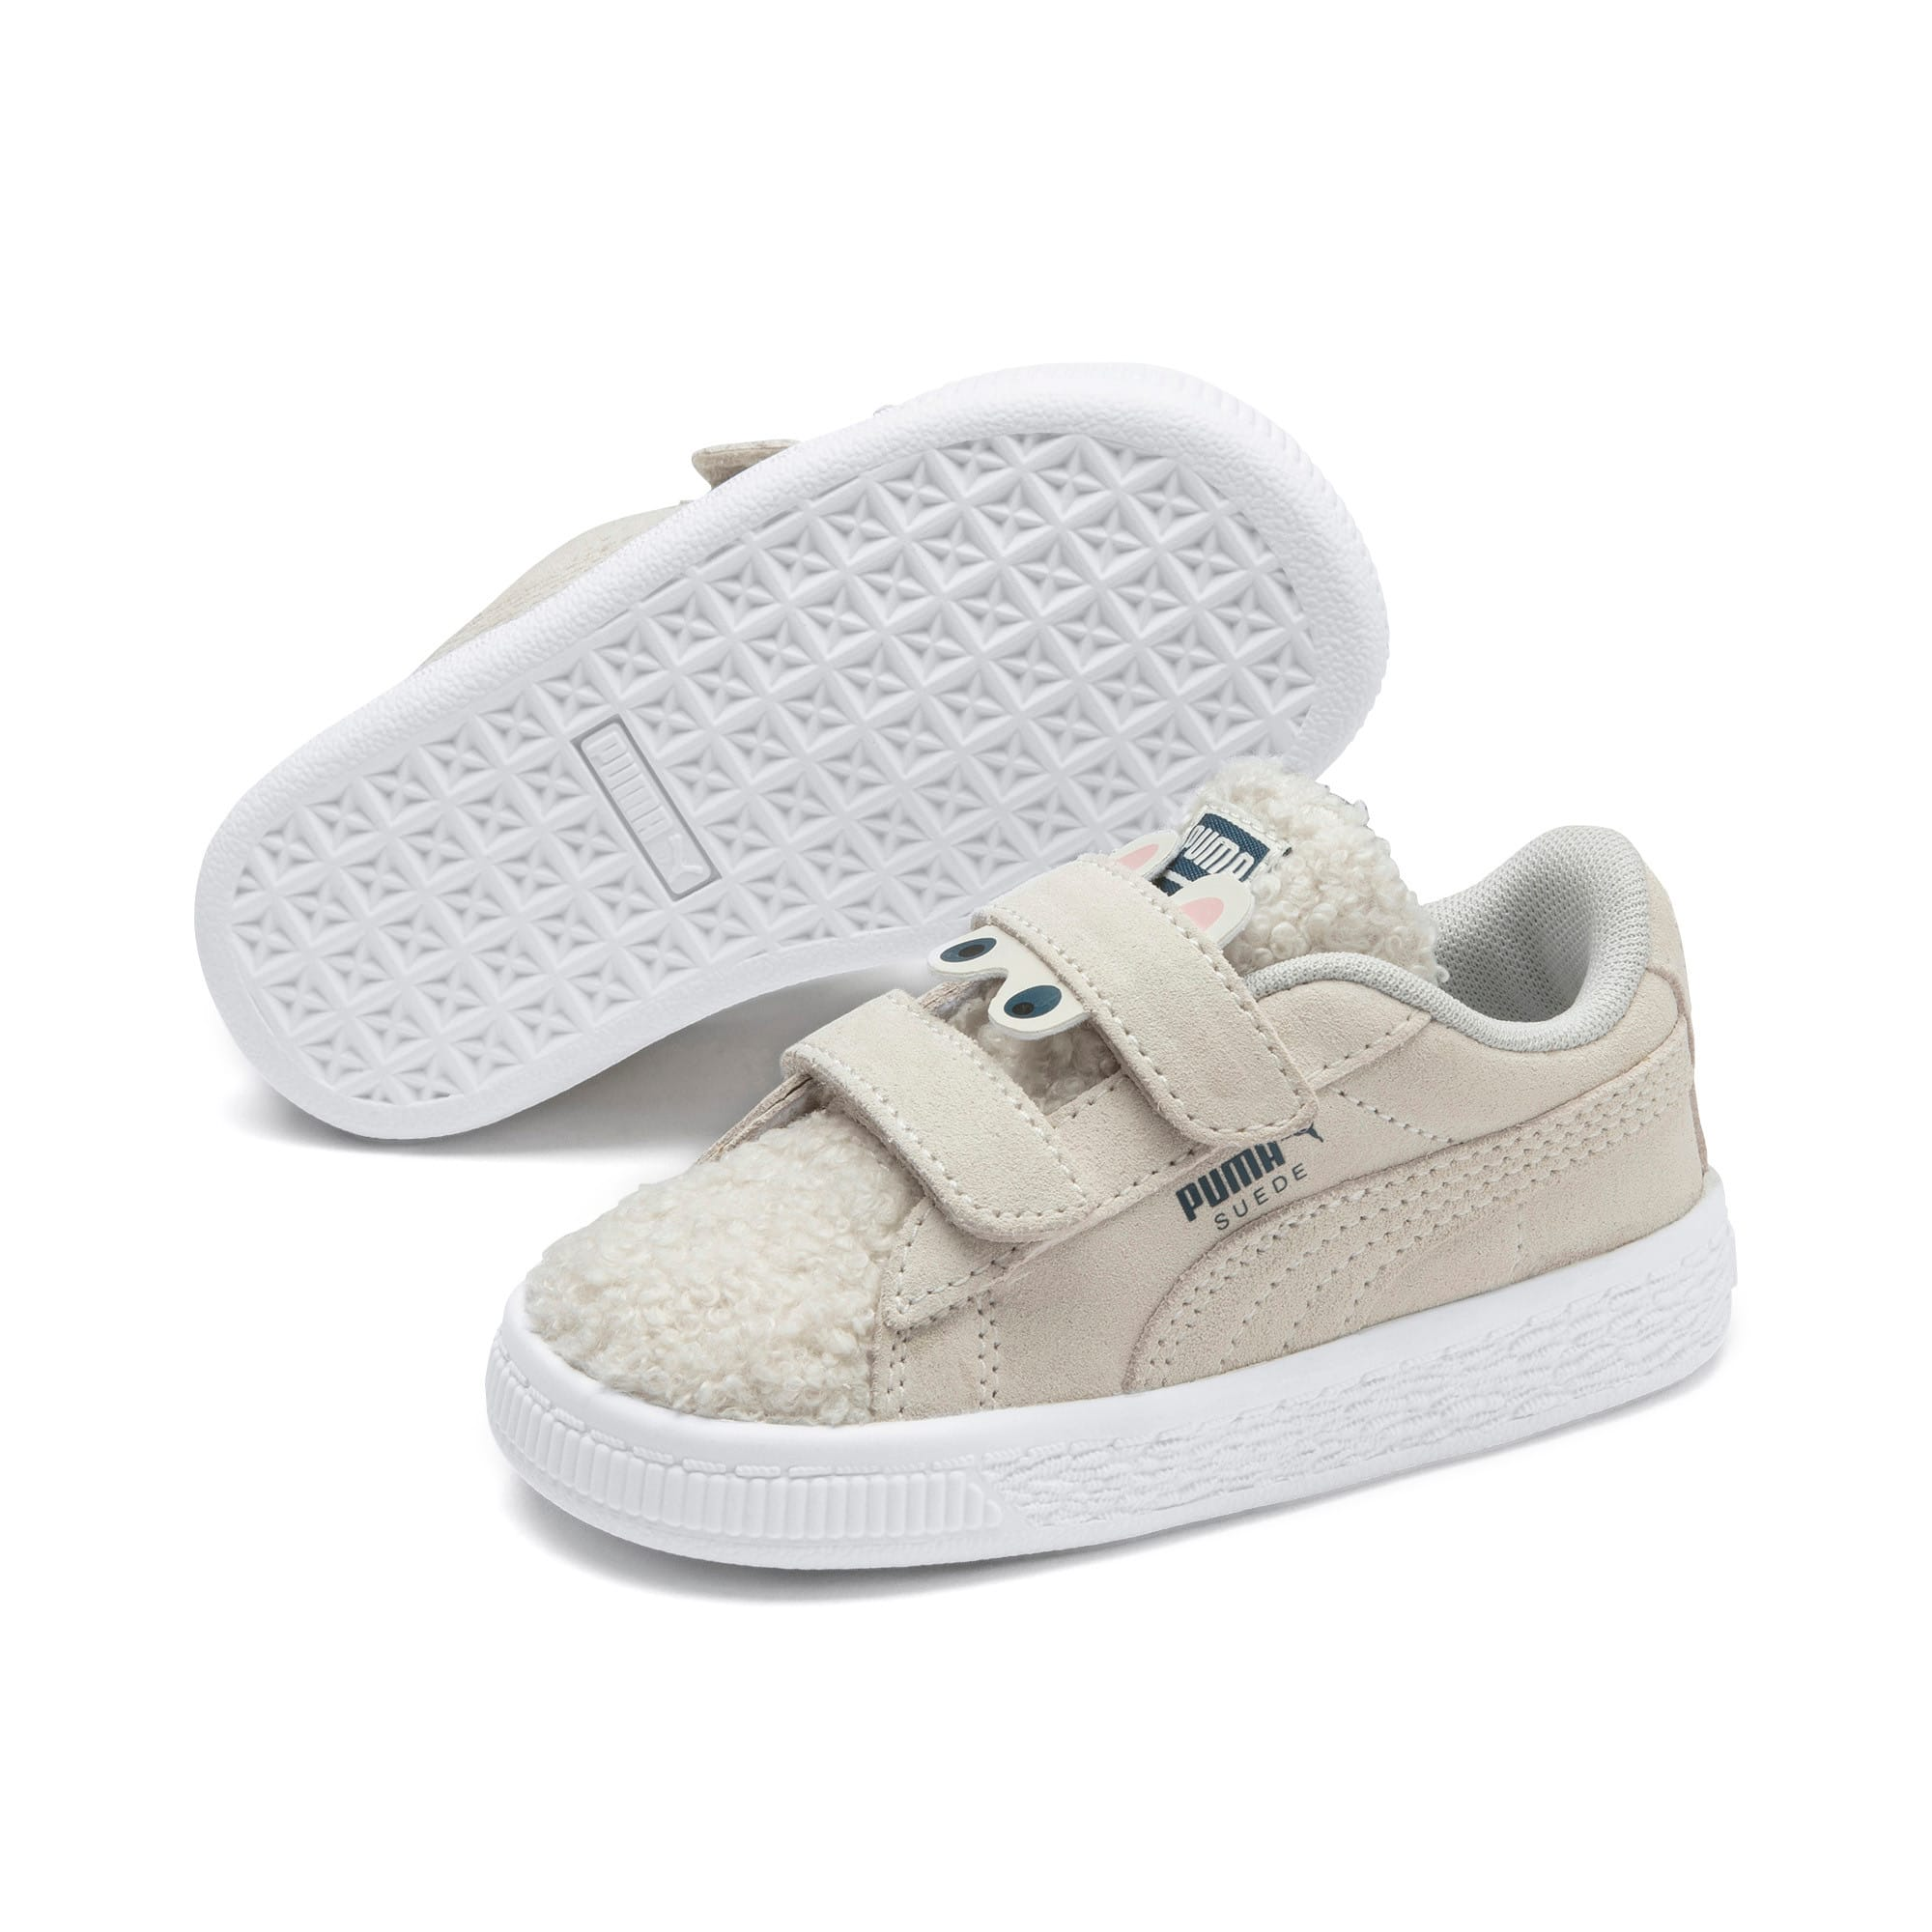 Suede Winter Monster Babies' Trainers, Whisper White-Gibraltar Sea, large